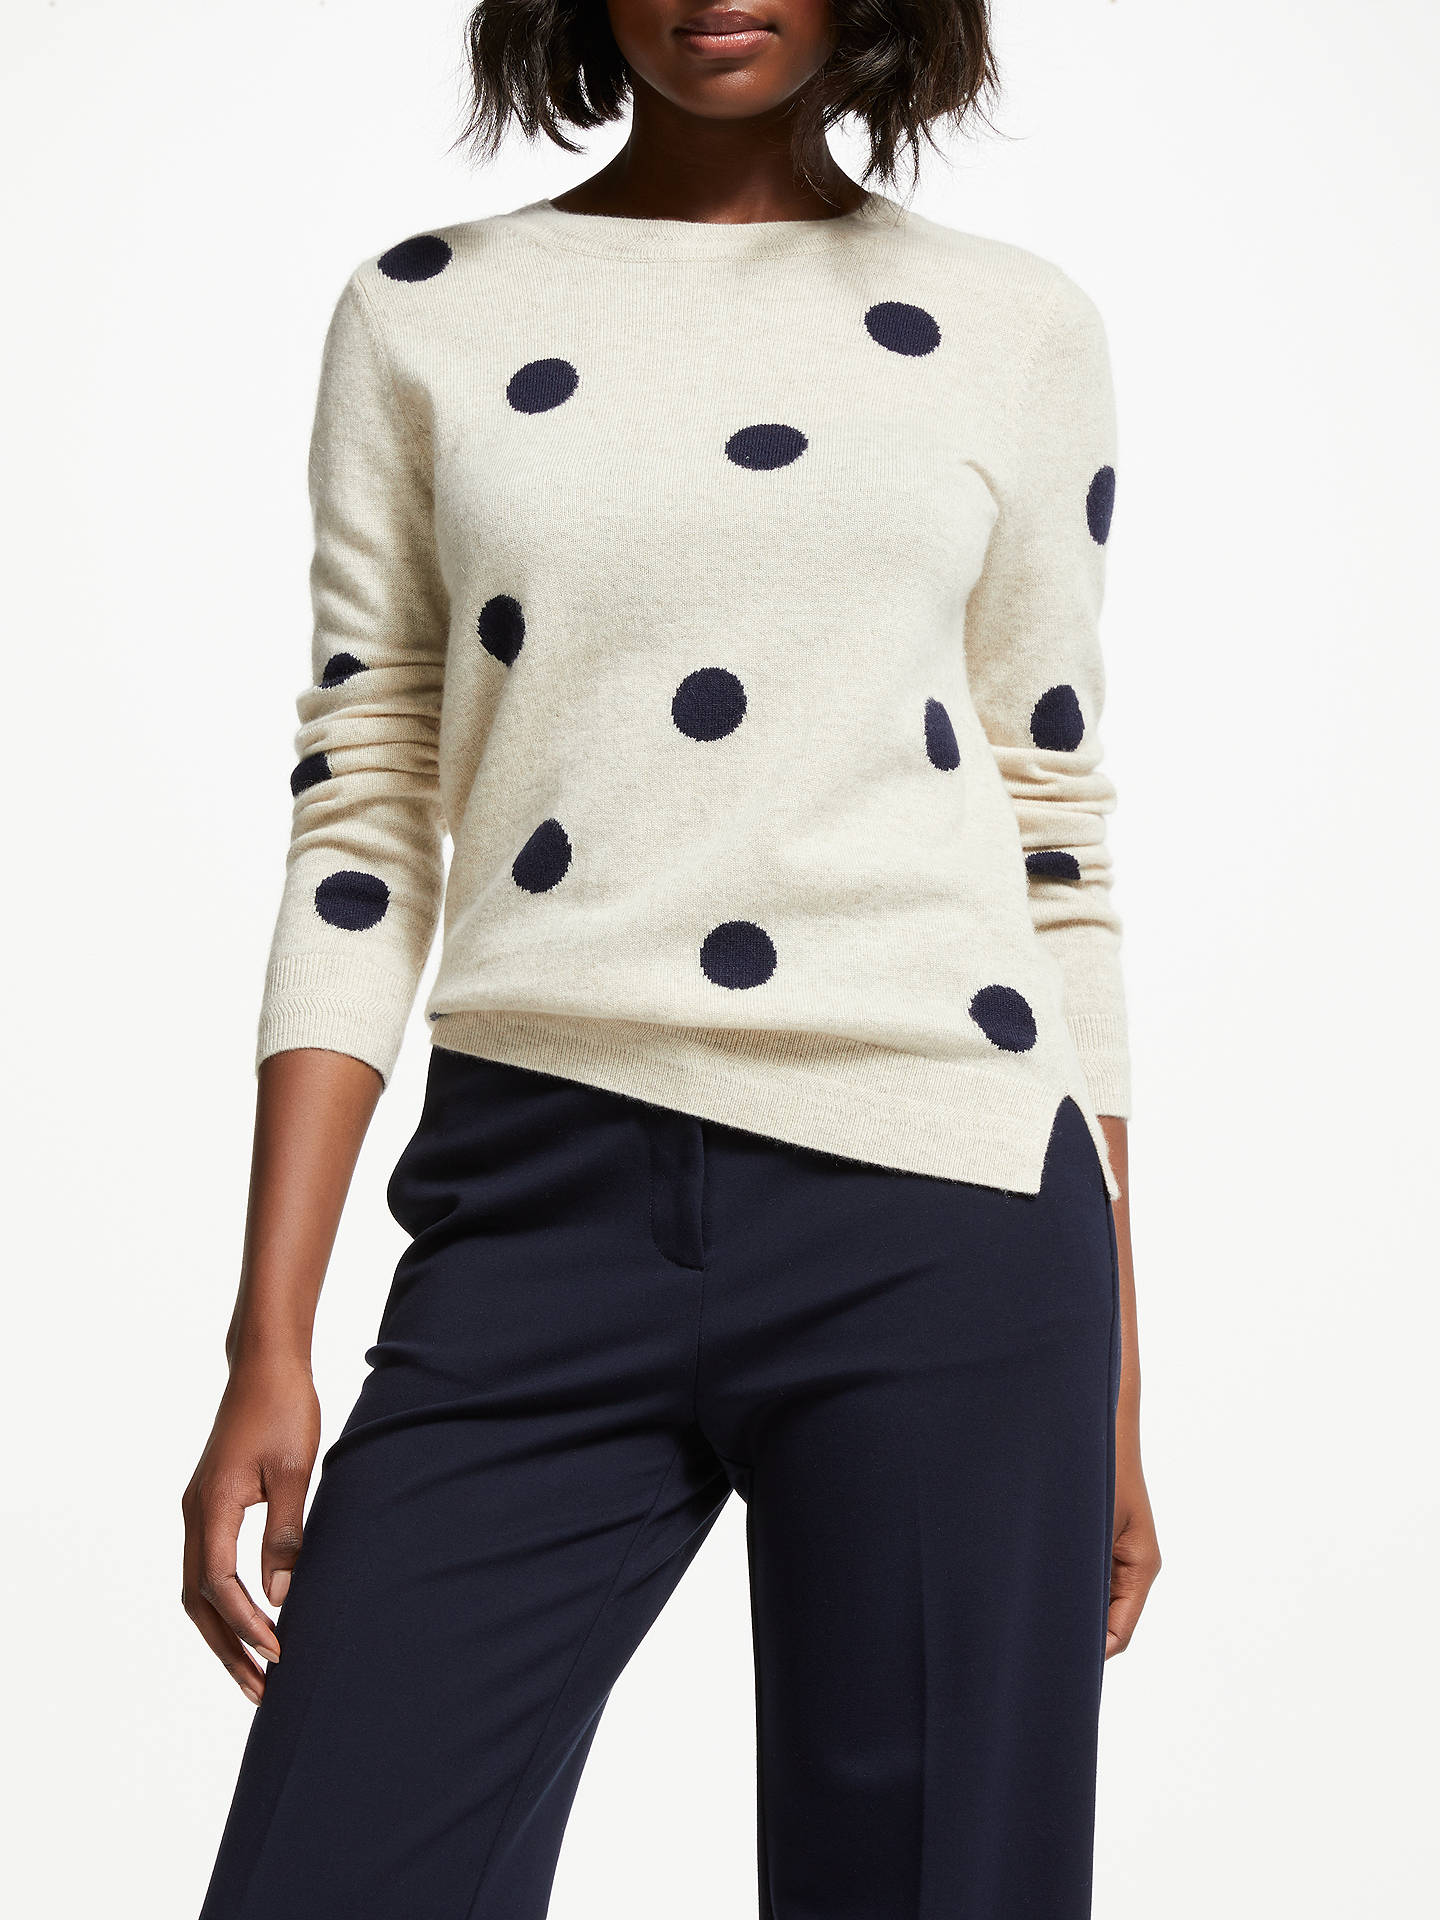 Buy Boden Cashmere Crew Neck Jumper, Navy/Oatmeal Spot, XS Online at johnlewis.com